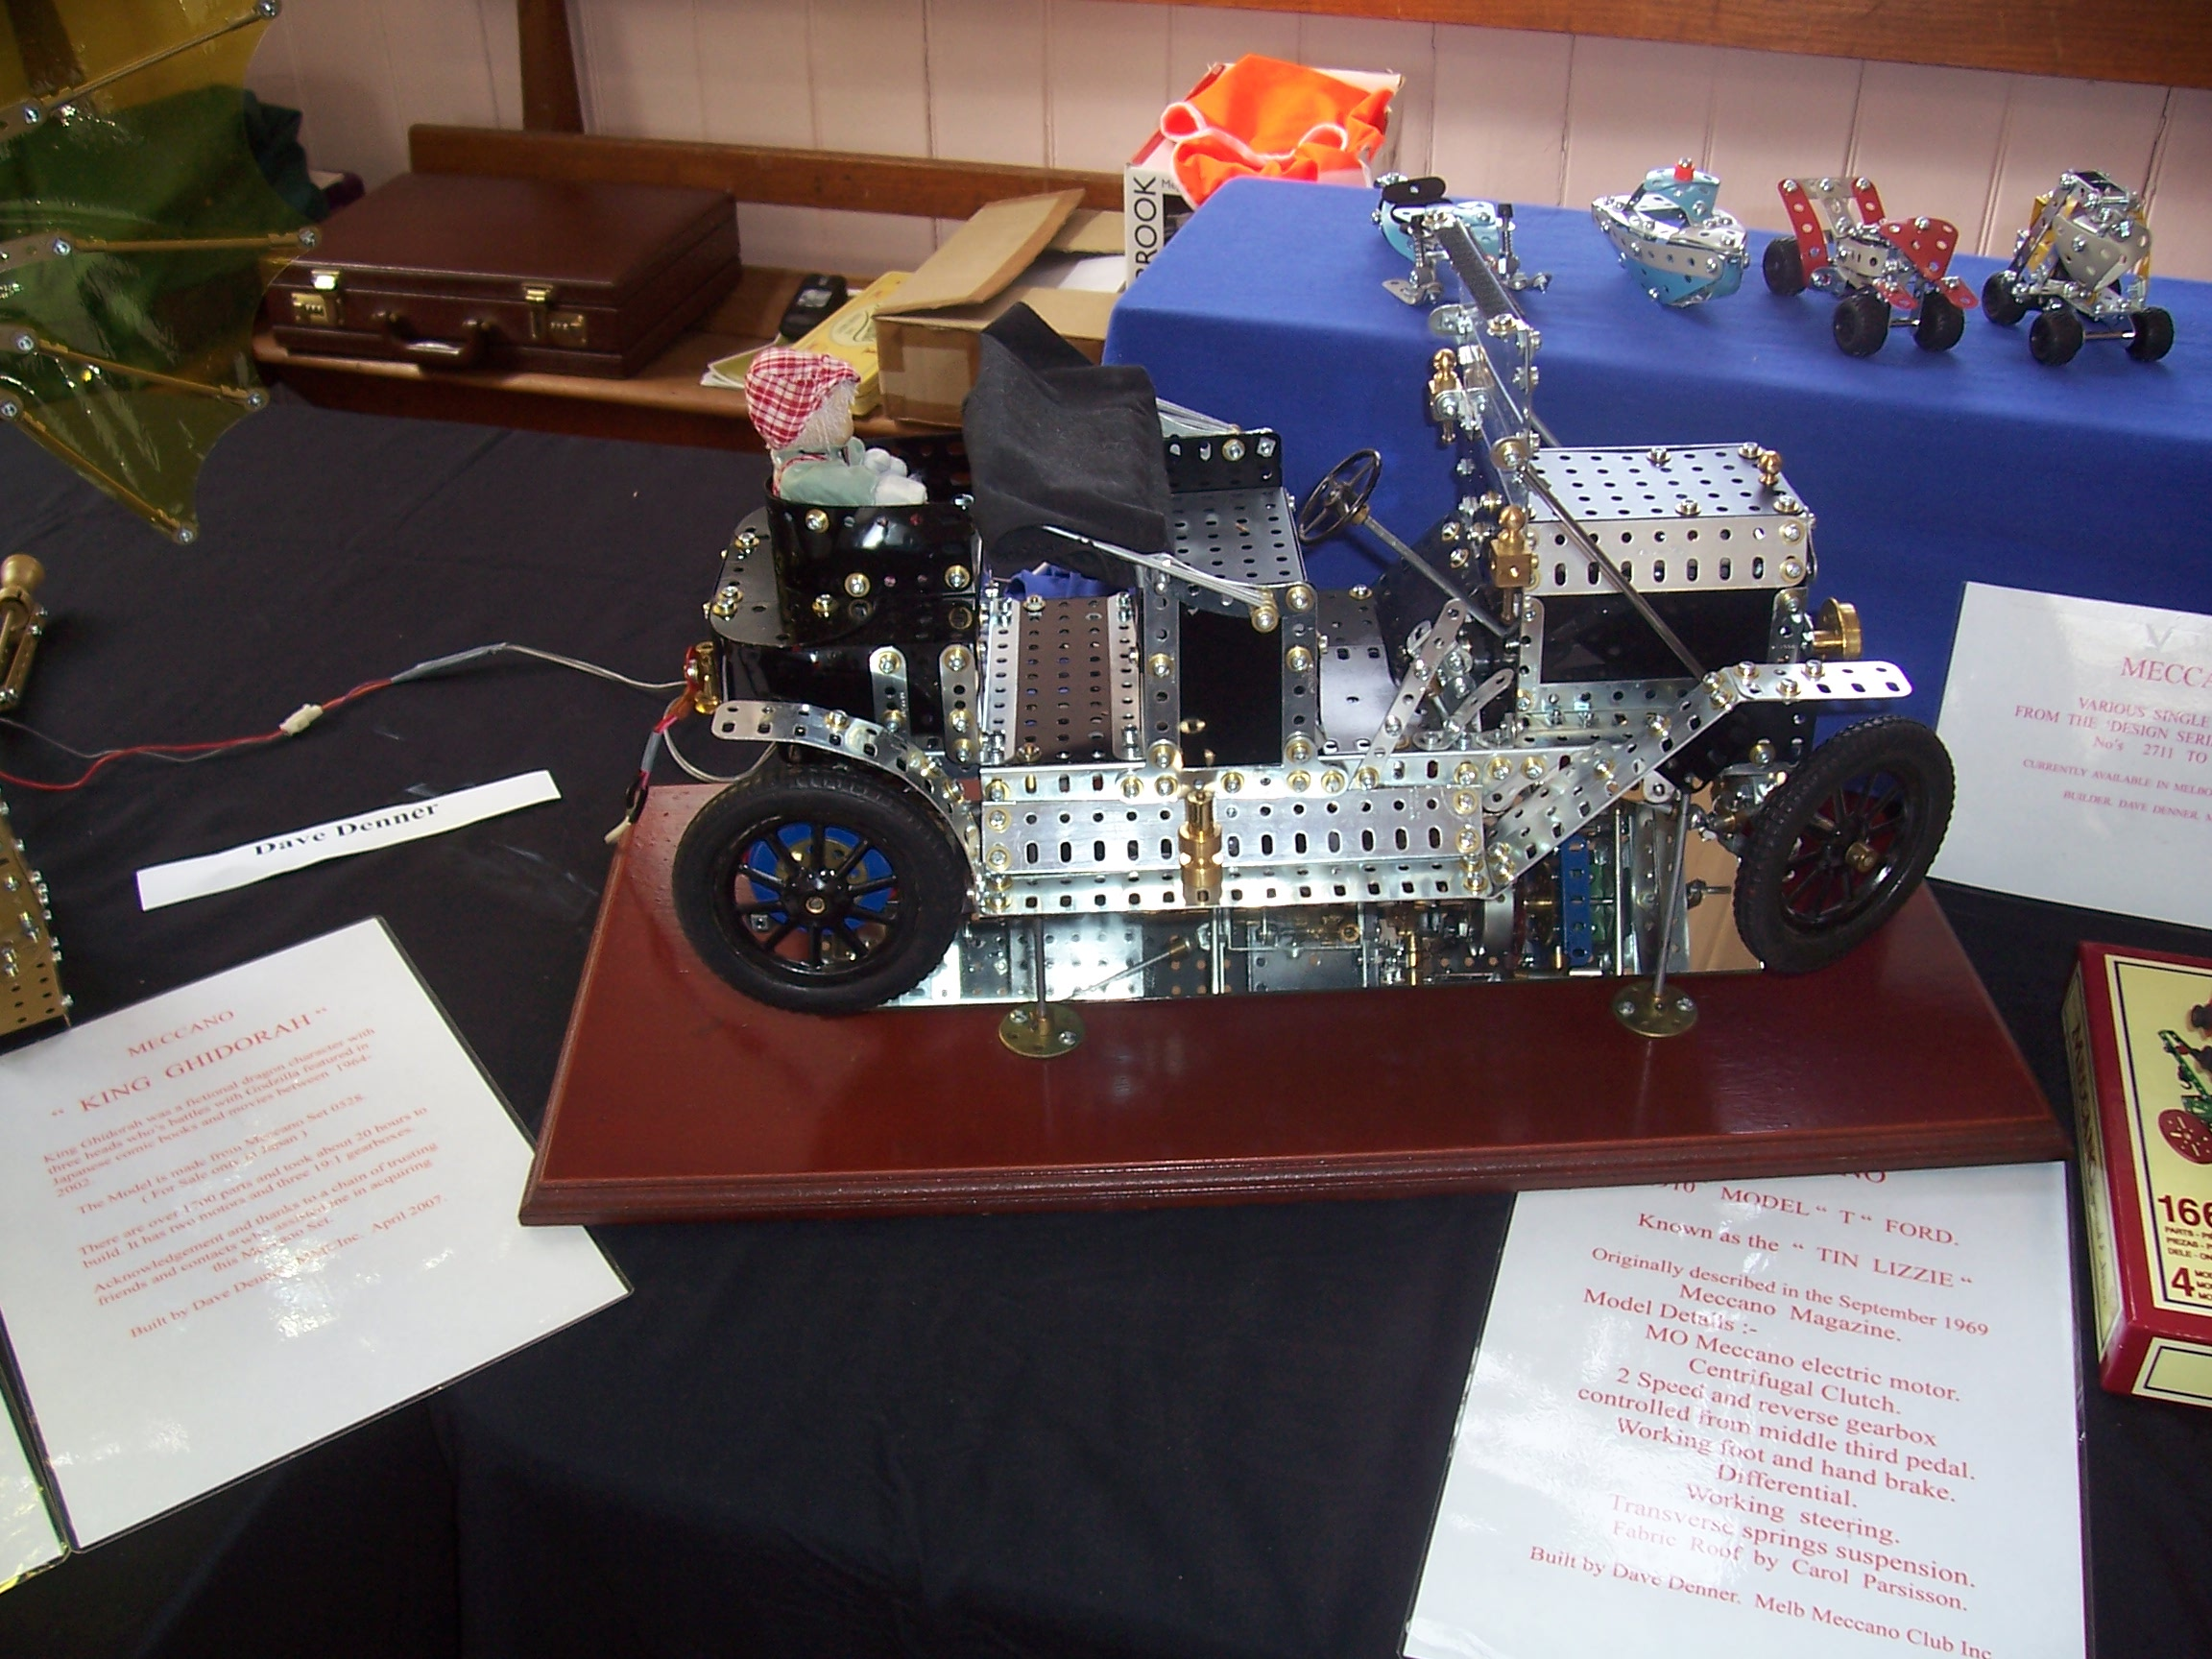 Melbourne Meccano Club 2007 Exhibition Motor Reversing Switches Electronics In 1910 Ford Model T By Dave Denner